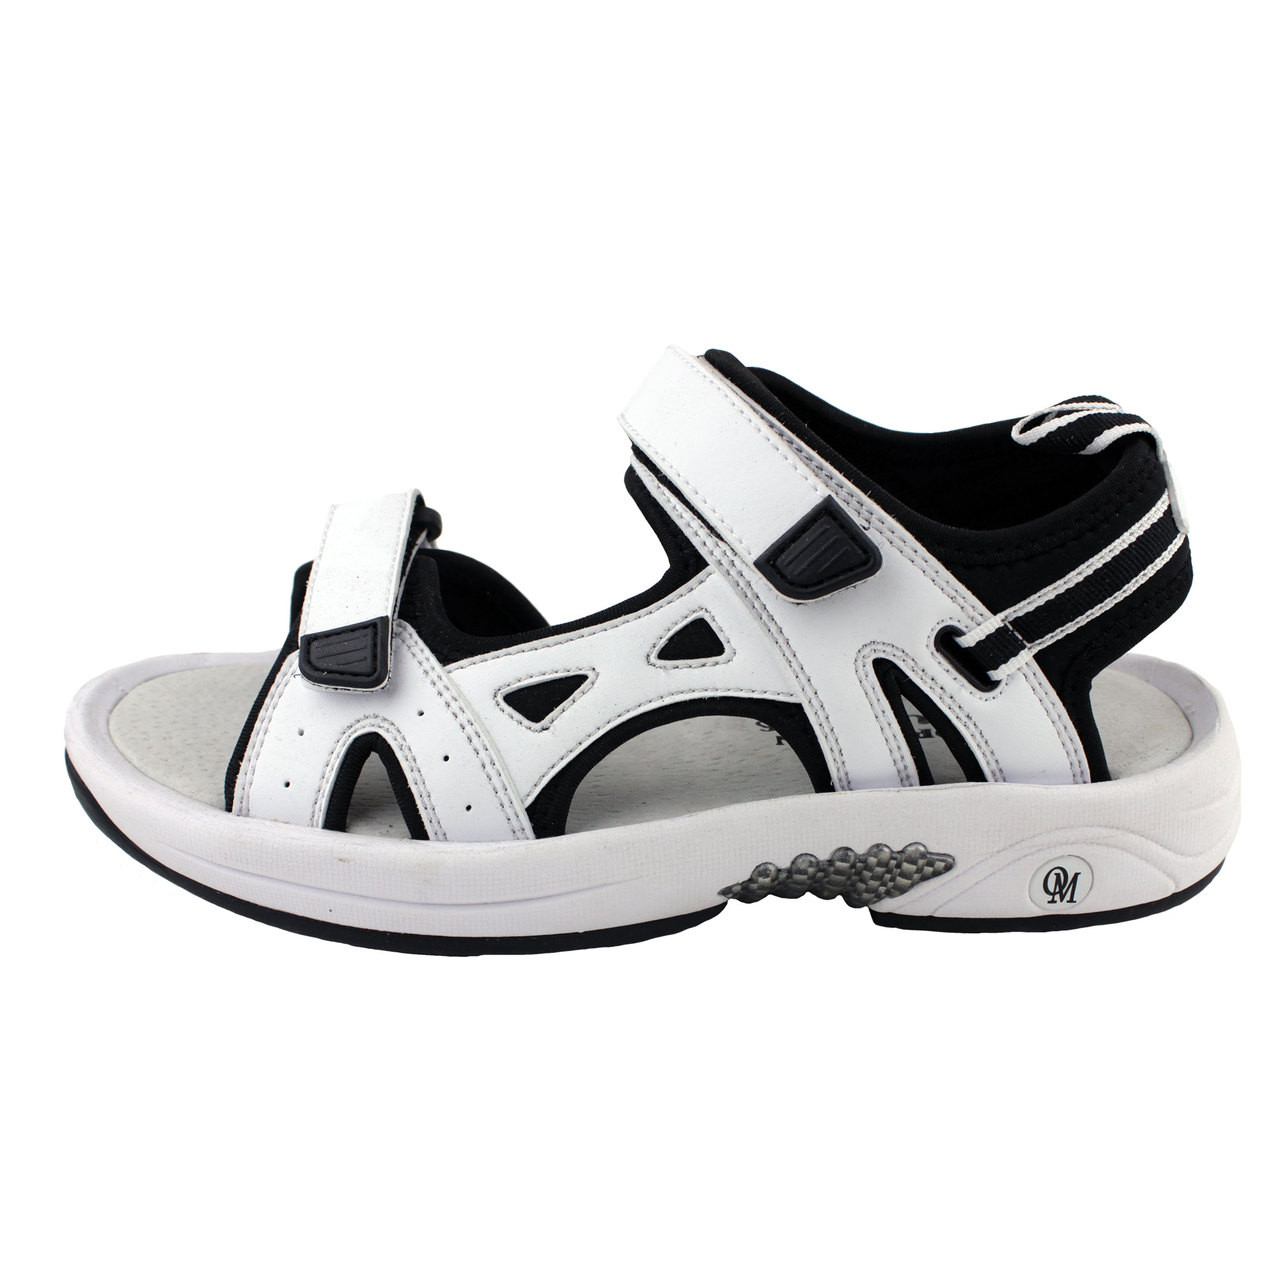 Women's WCS500S Athletic Golf Sandal by Oregon Mudders